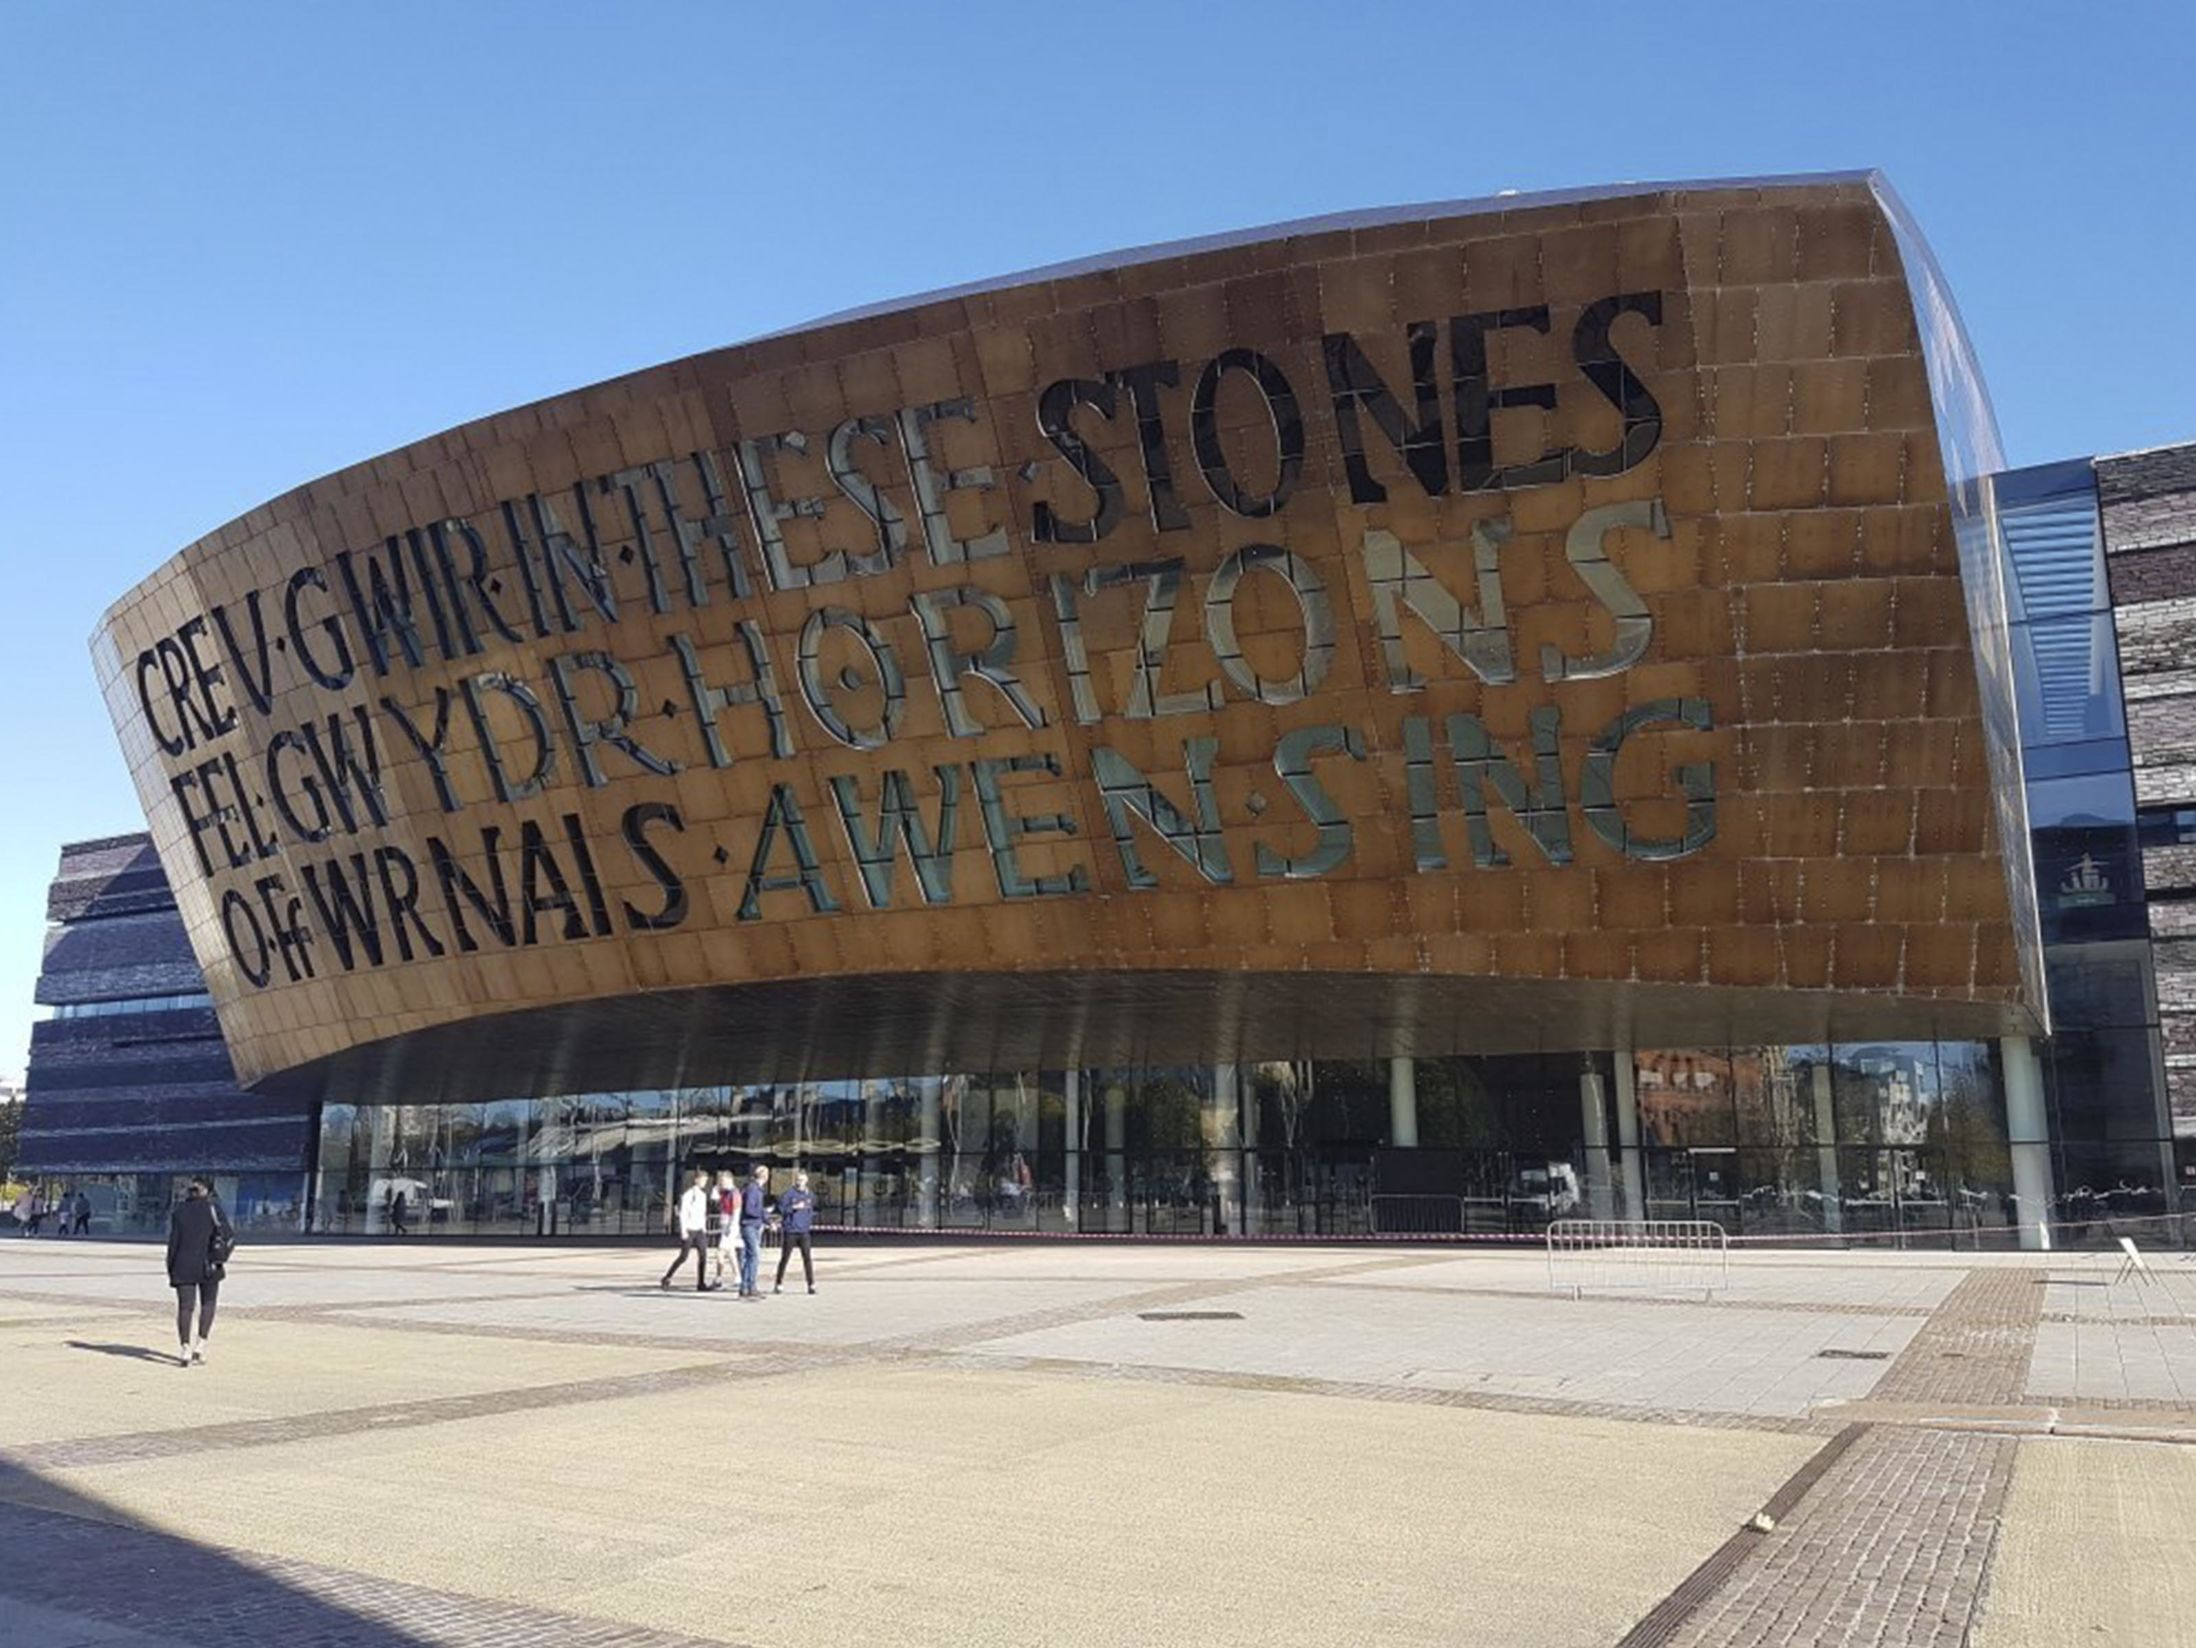 Things to do in Cardiff - Wales Millennium Centre